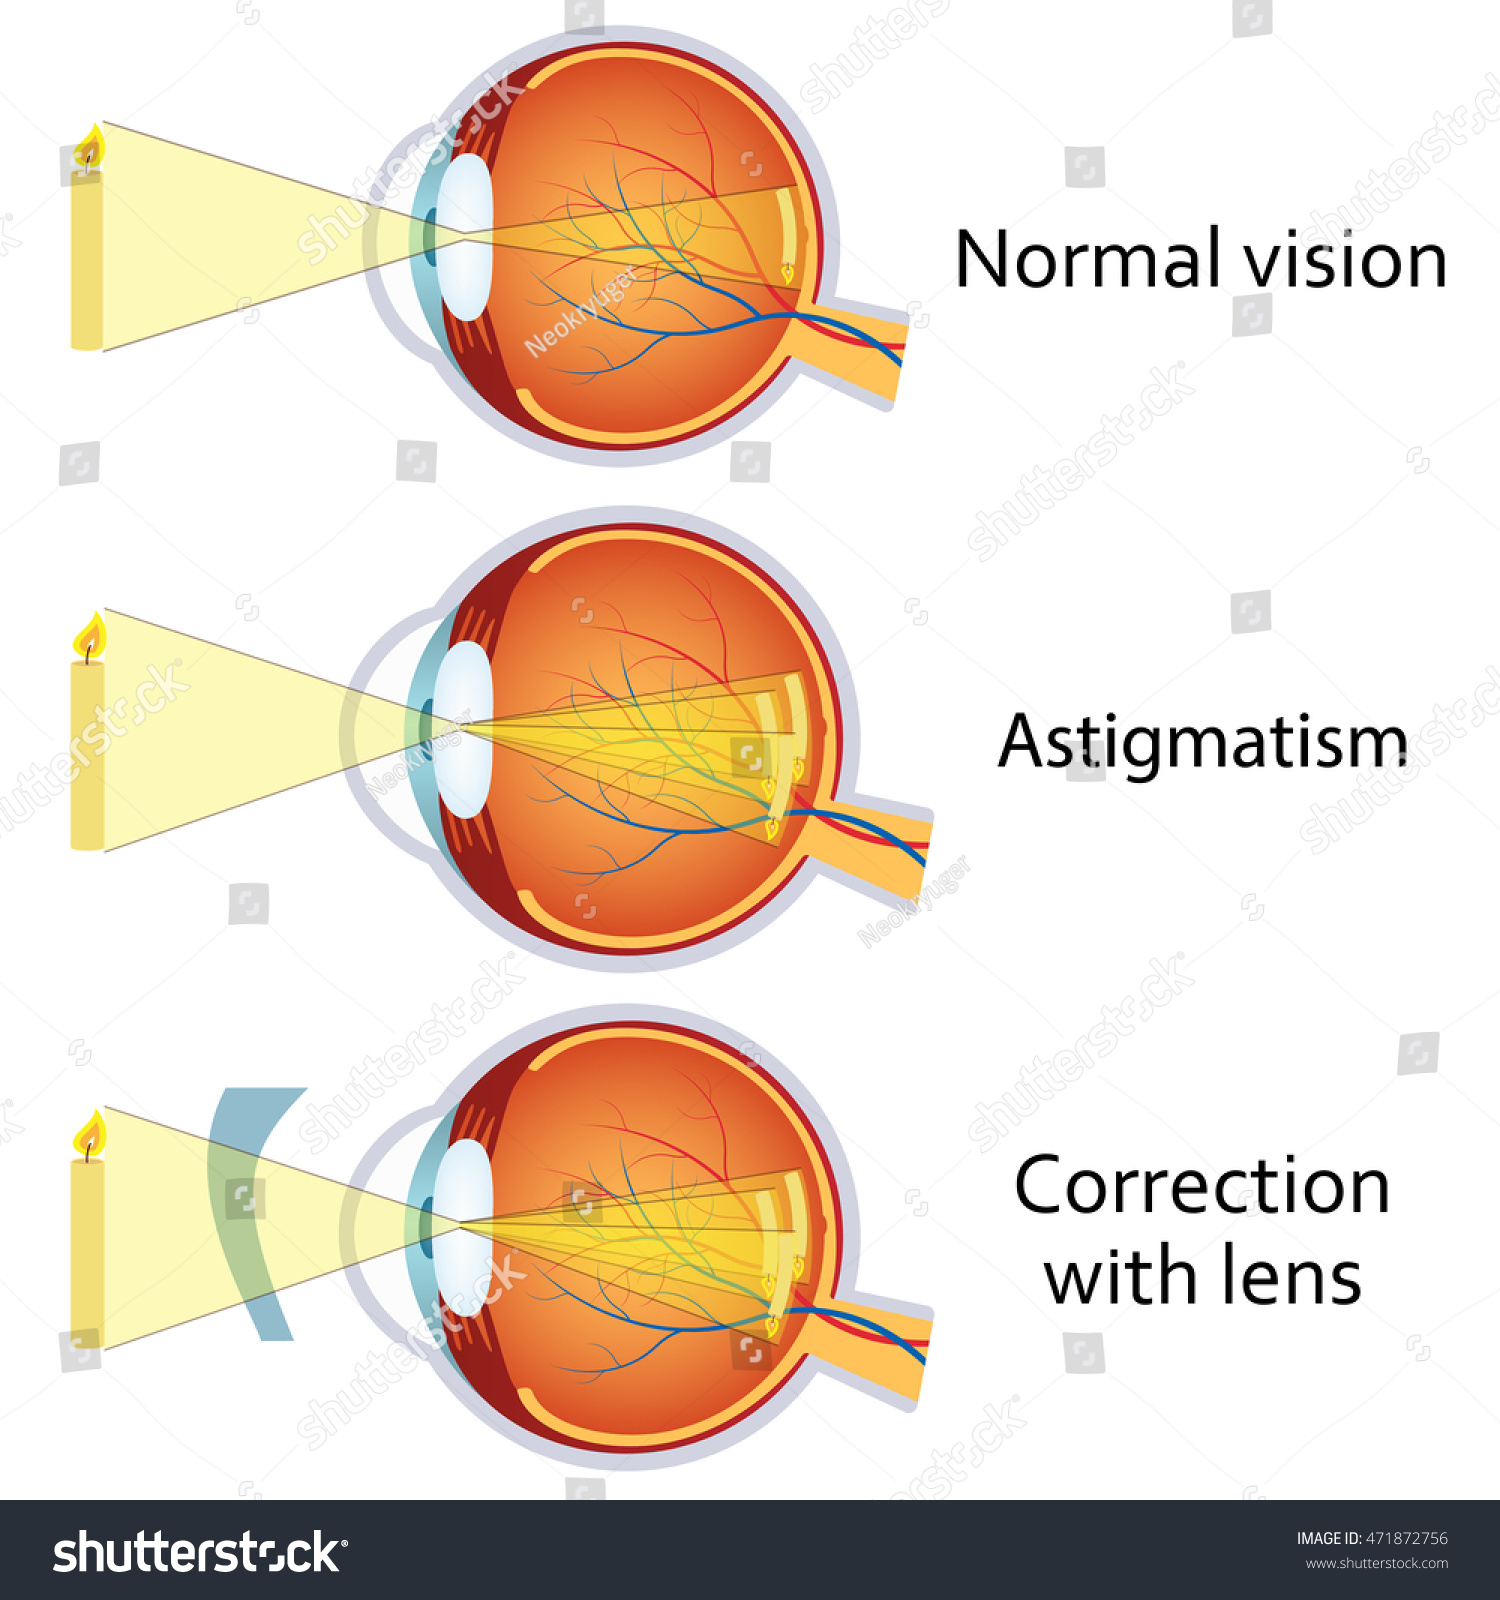 Astigmatism Corrected By Cylindrical Lens Eyesight Stock Photo